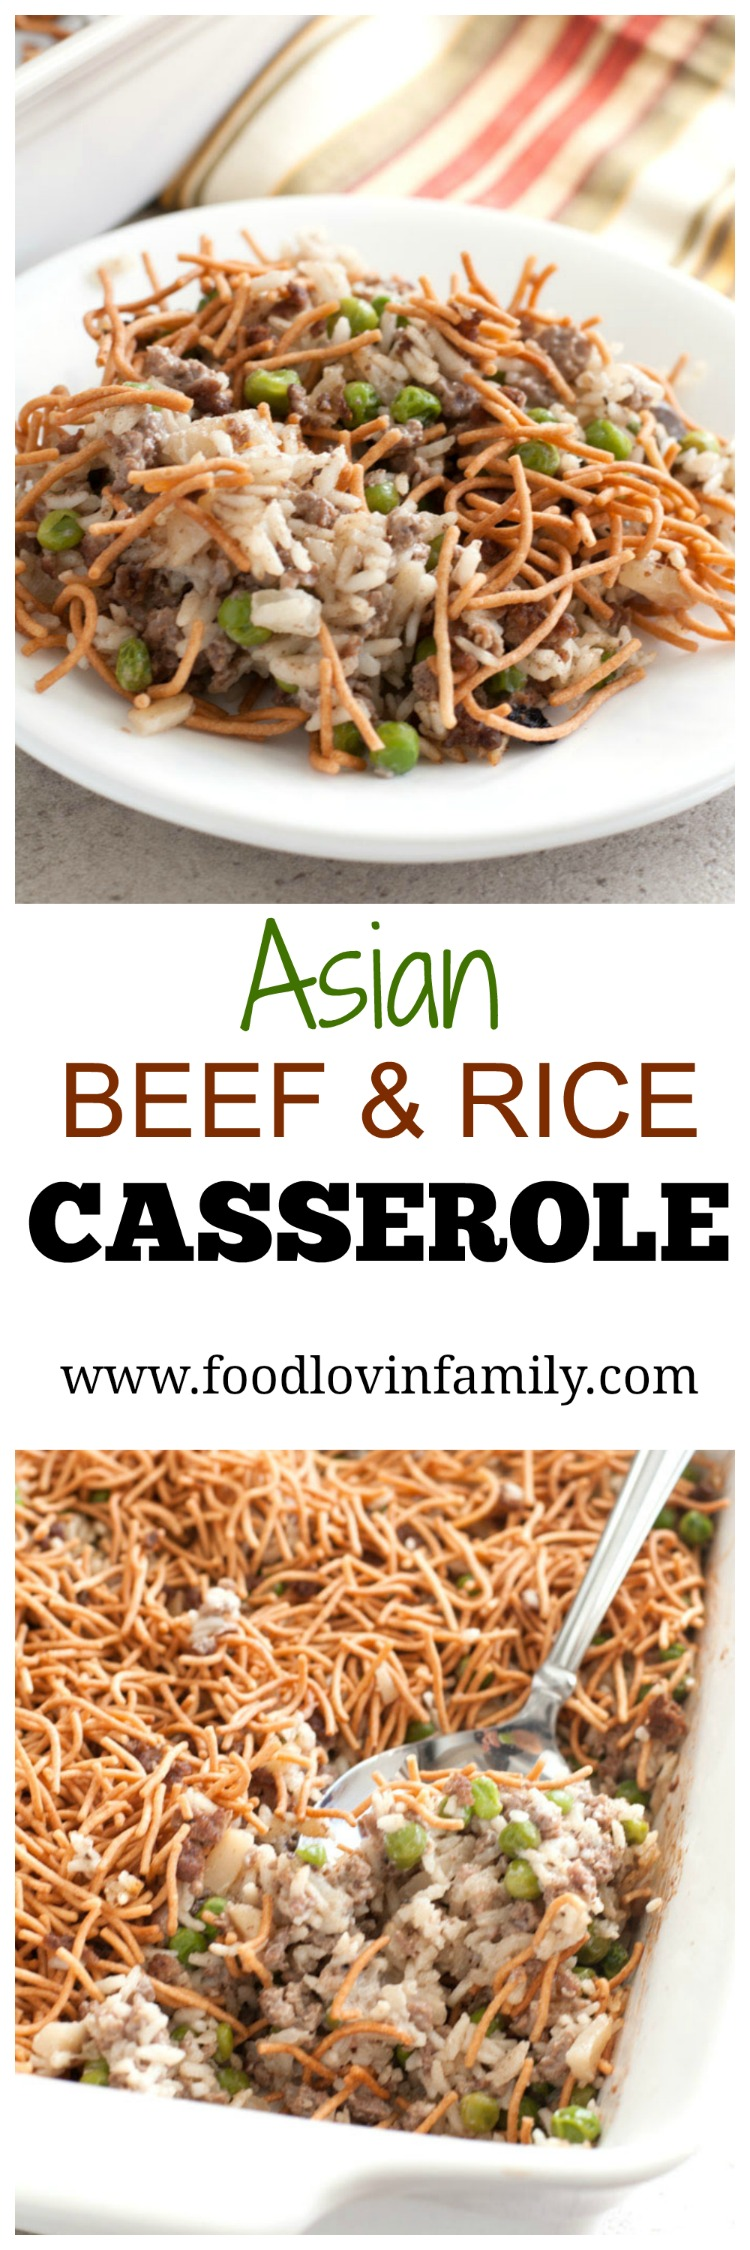 Asian beef and rice casserole is filled with veggies, beef and rice topped with crispy chow mein noodles. PIN